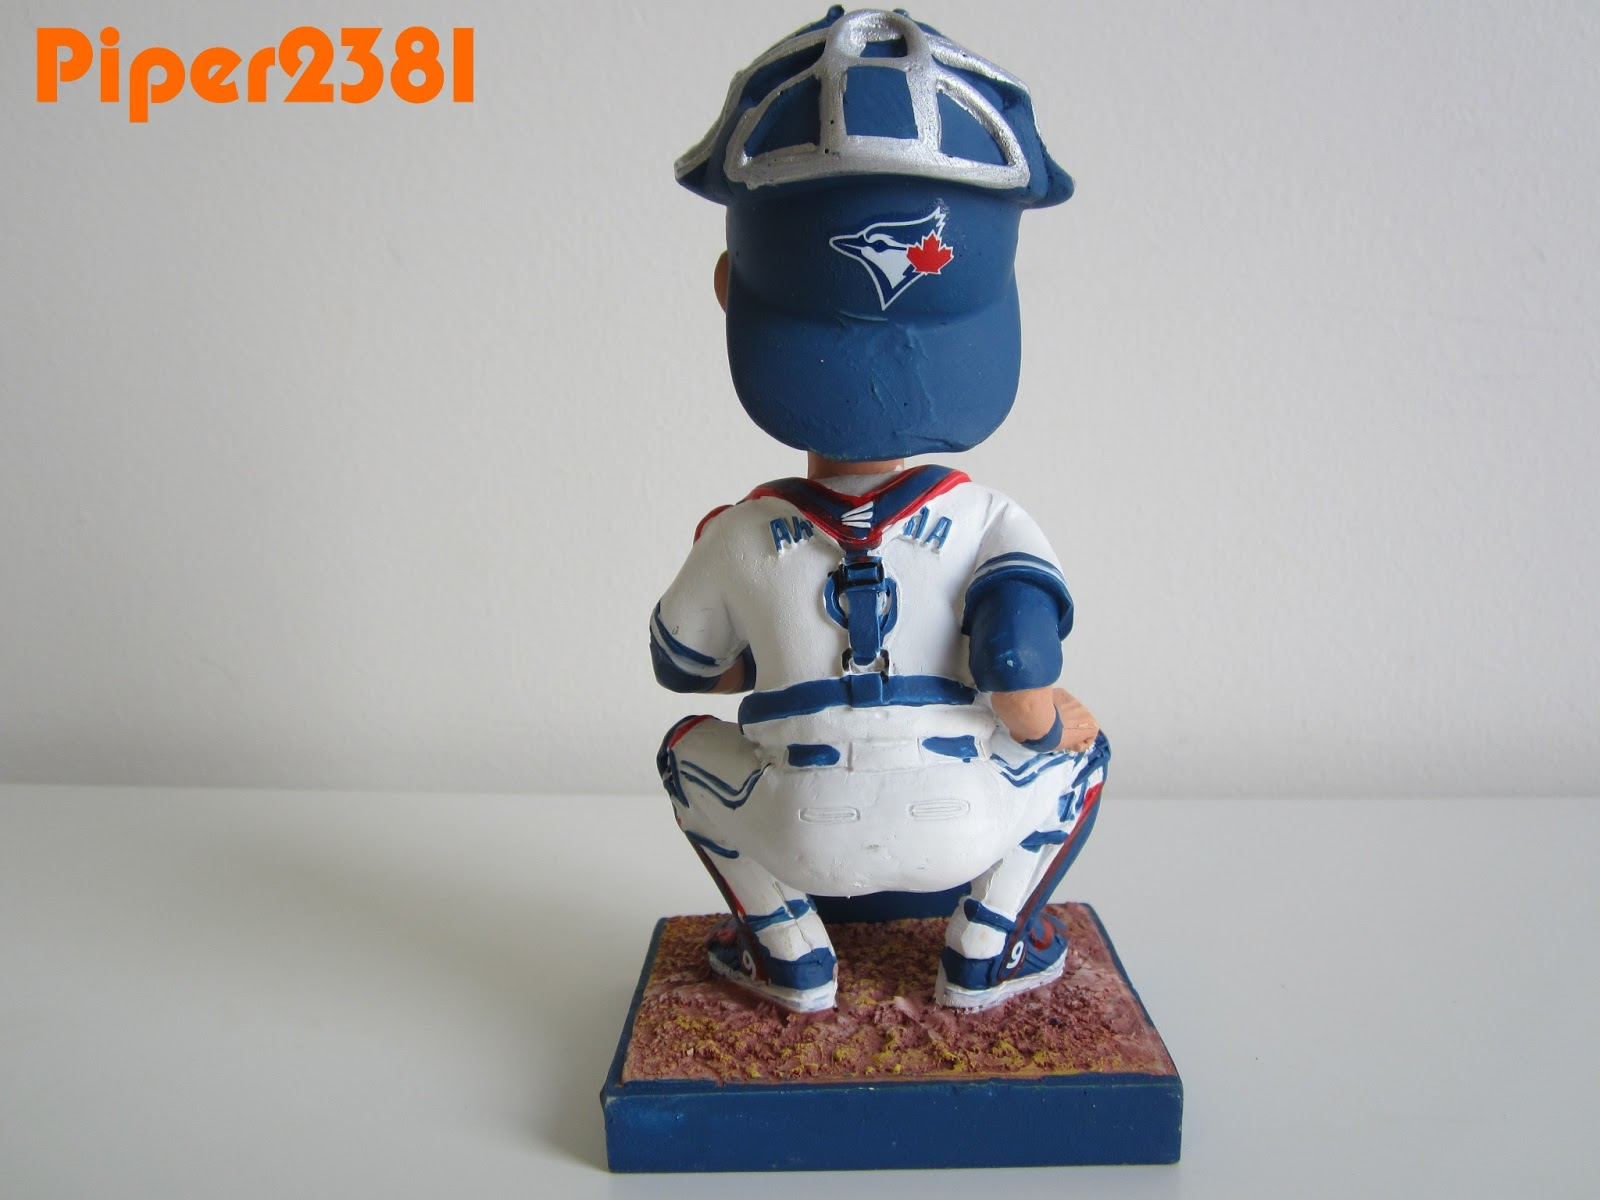 a3eb34de426 This is a unique bobblehead for me because JP is in a squatting catcher s  position. The paintjob is a little better than average for a free giveaway.